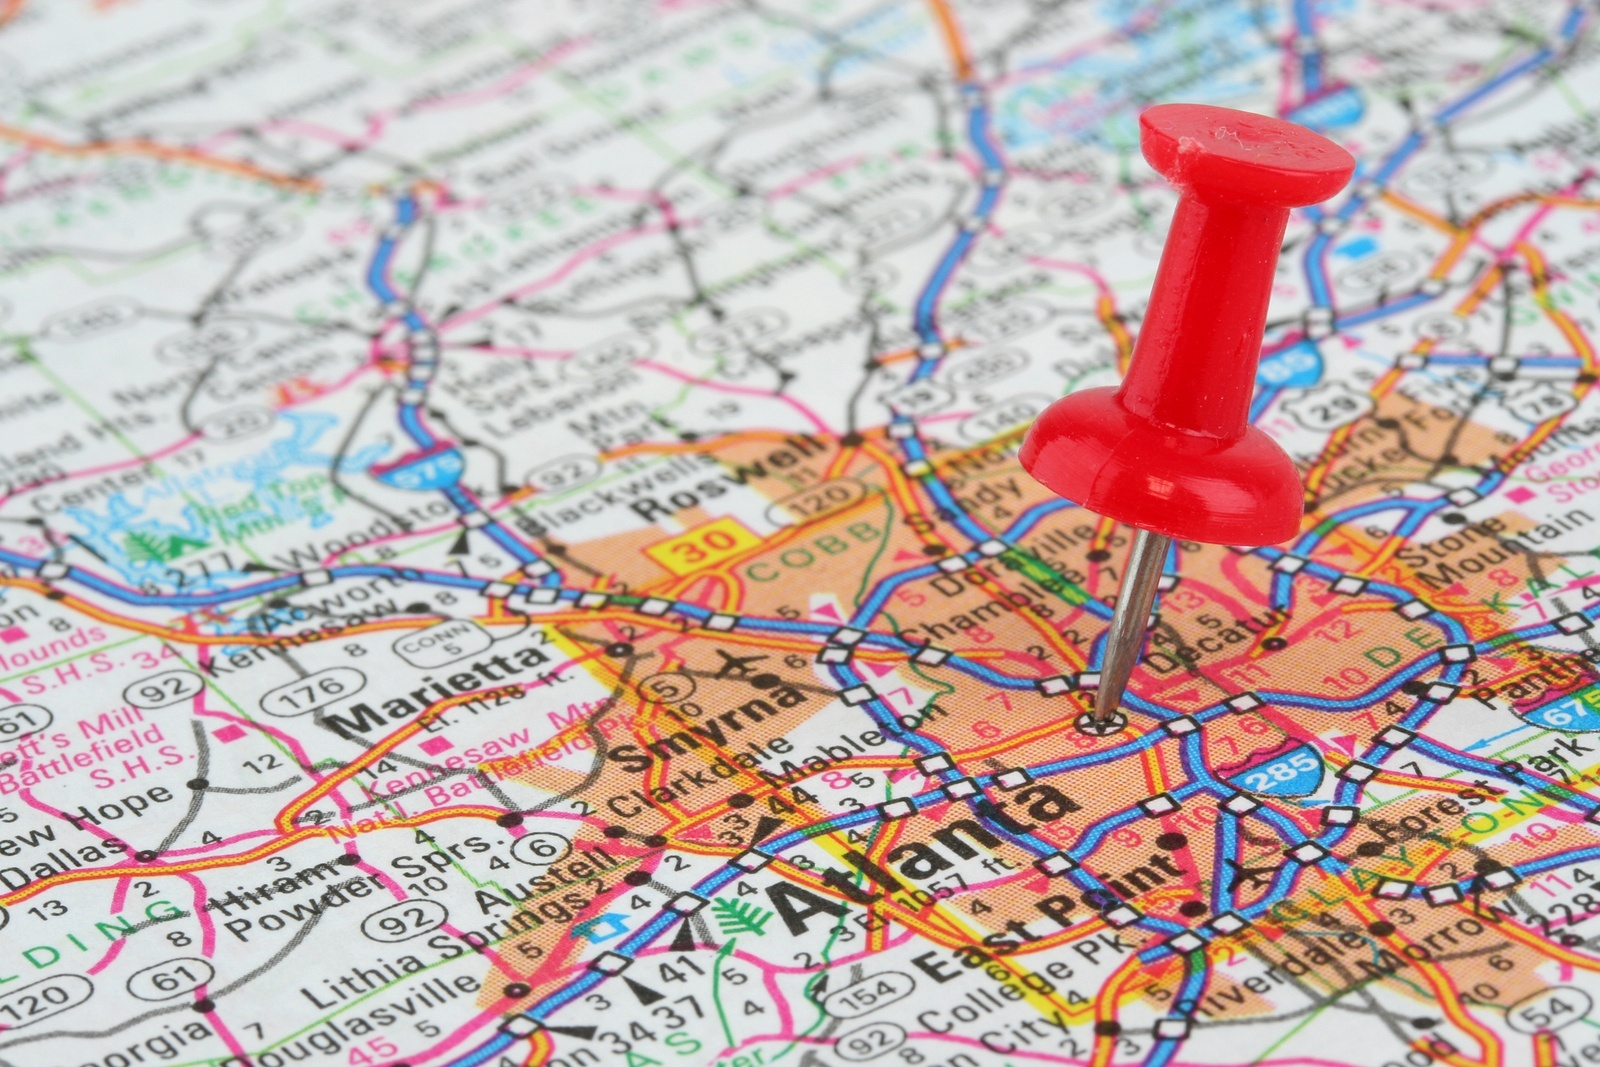 How to Ask the DeKalb County Tax essor for a New essment Dekalb County Ga Gis Maps on